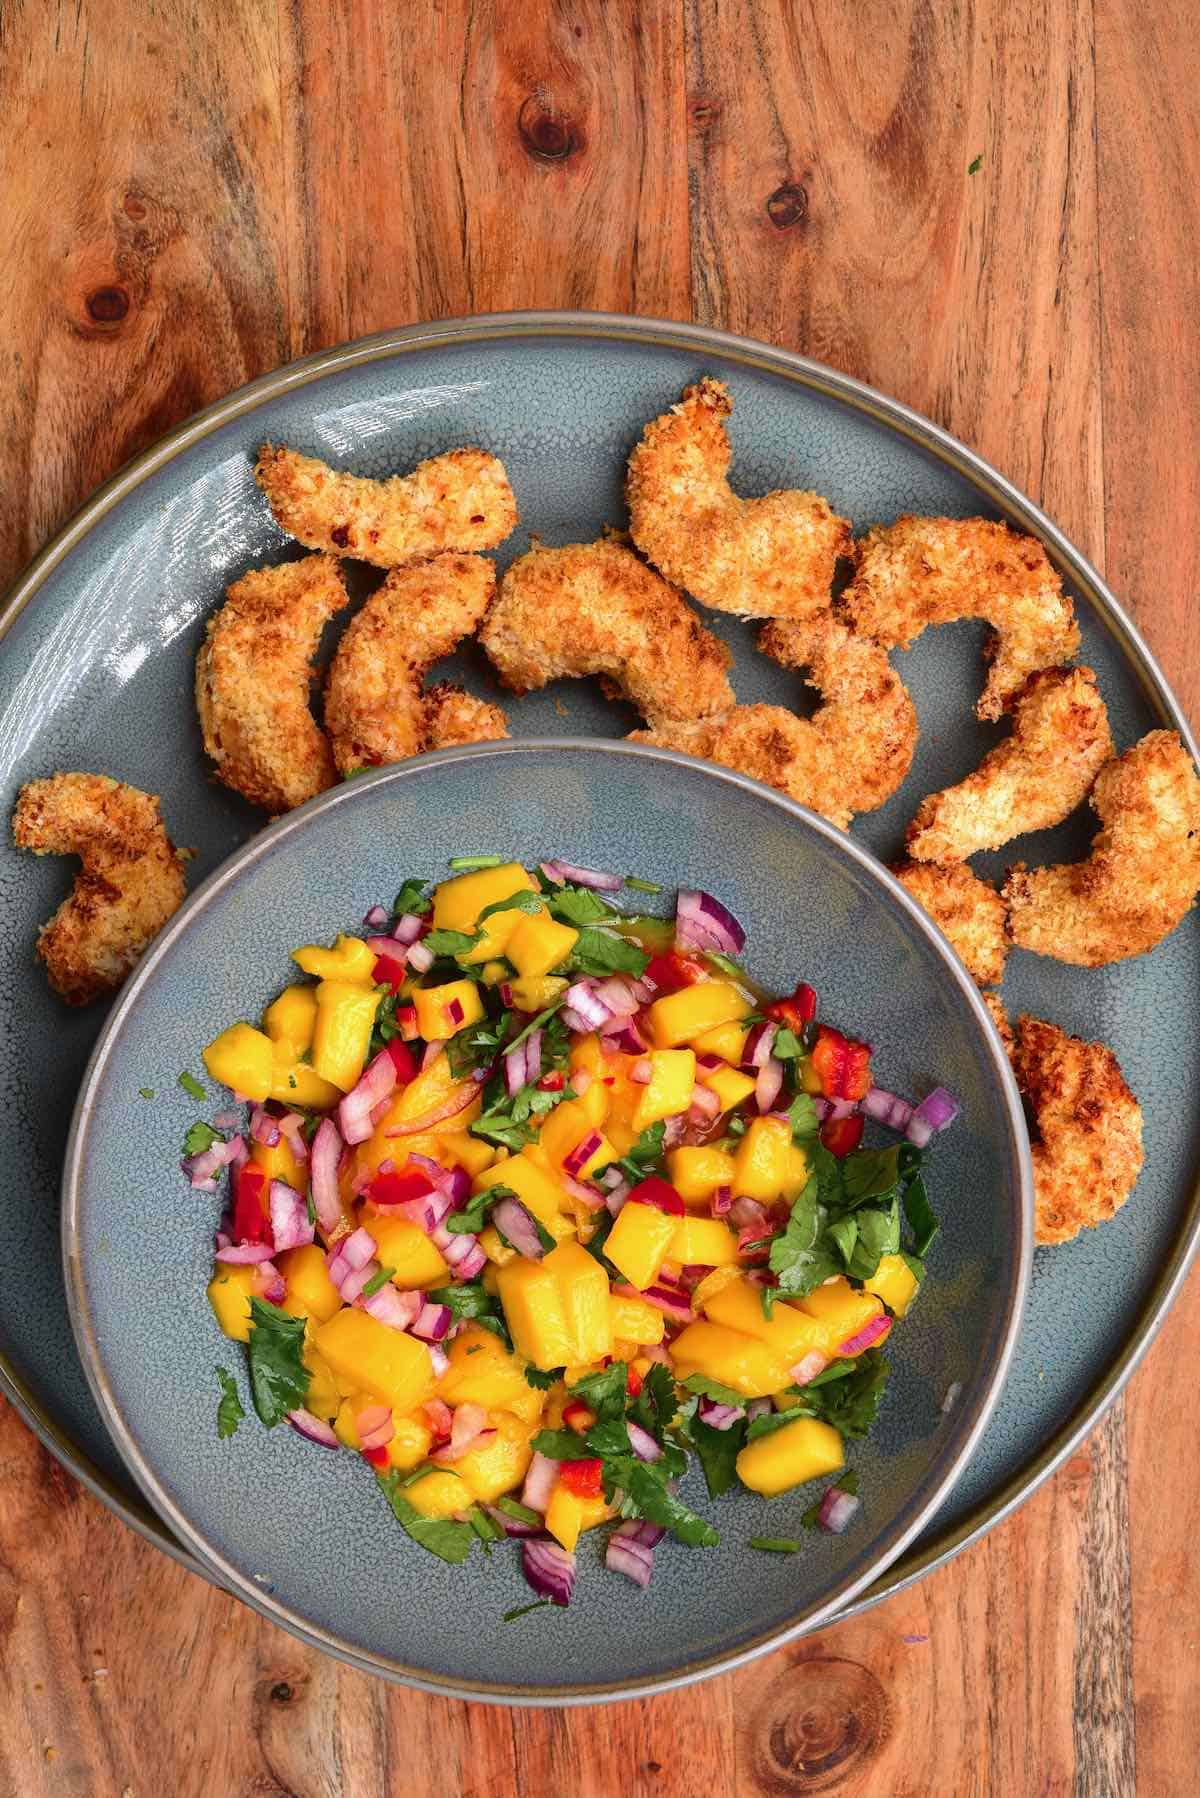 A plate with crispy baked shrimp and a bowl with mango salsa